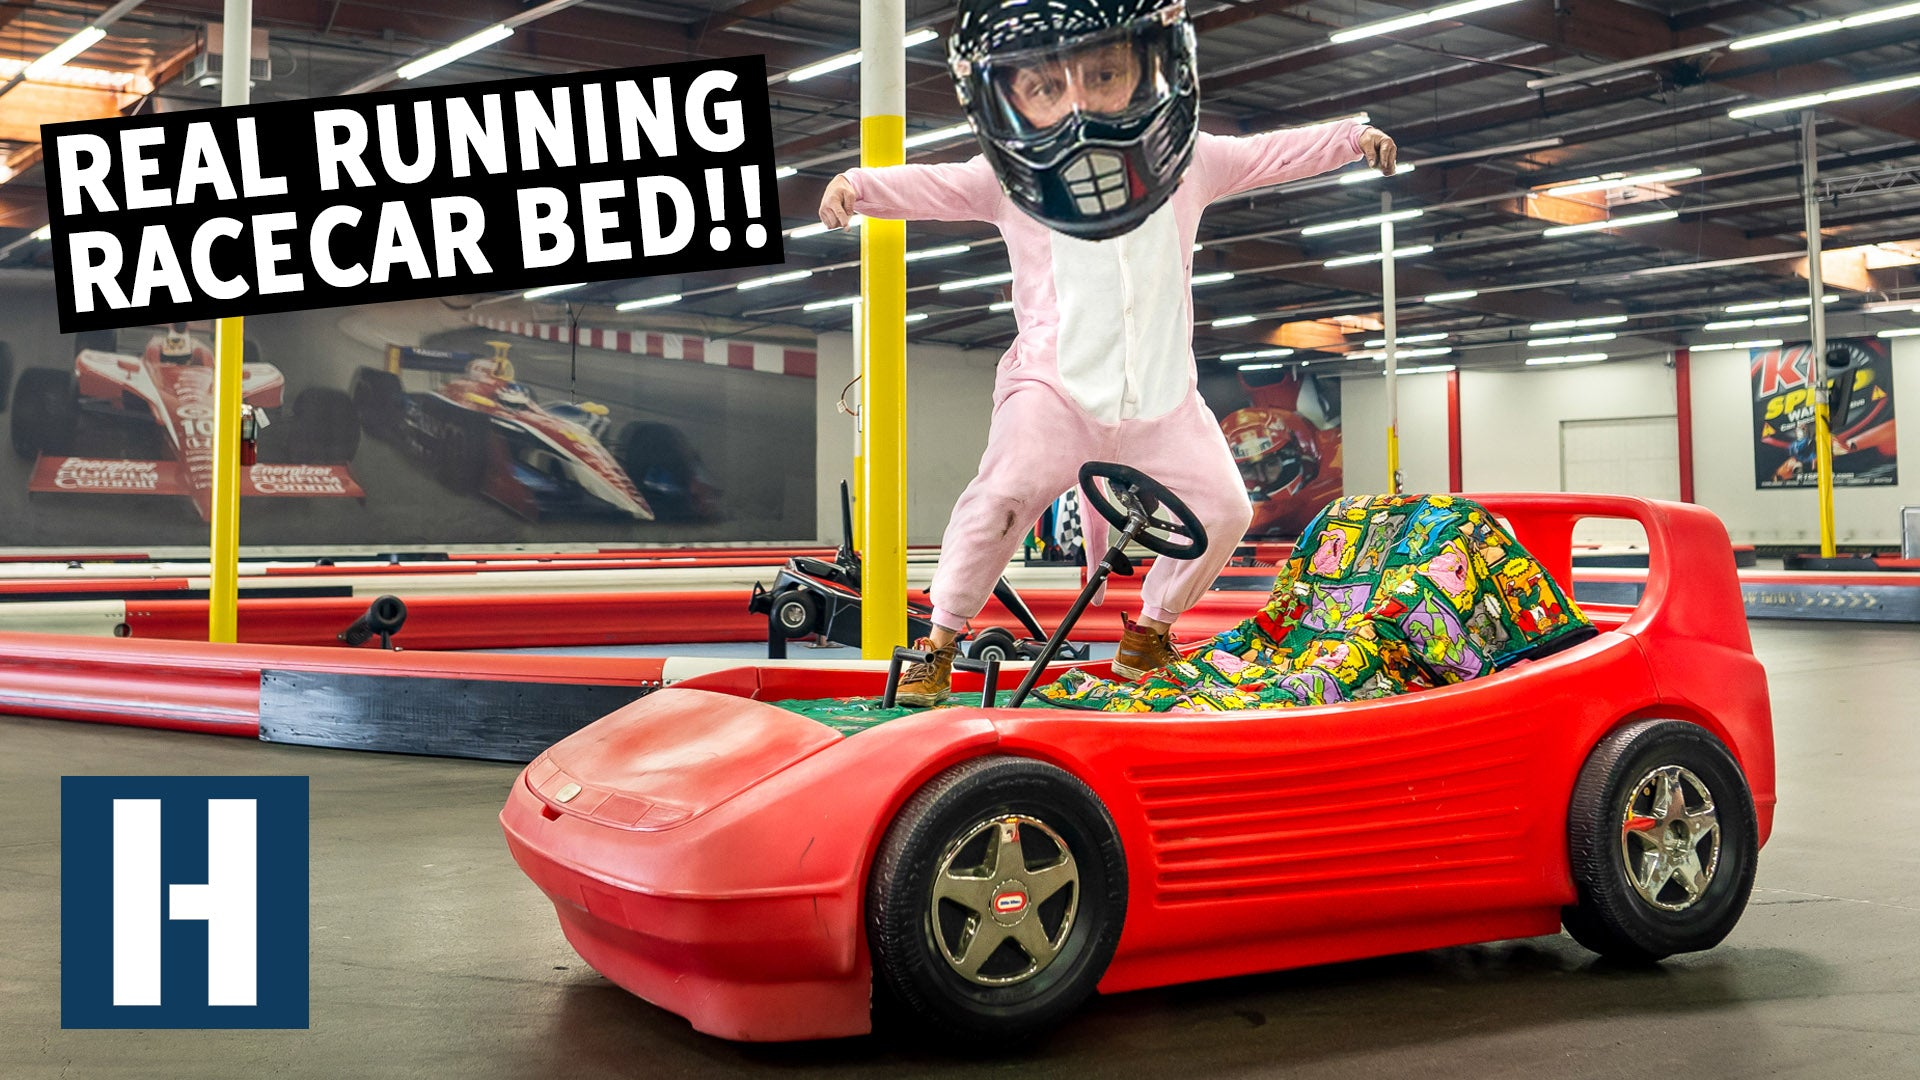 We Build A Motorized Racecar Bed And Take It To A Kart Track